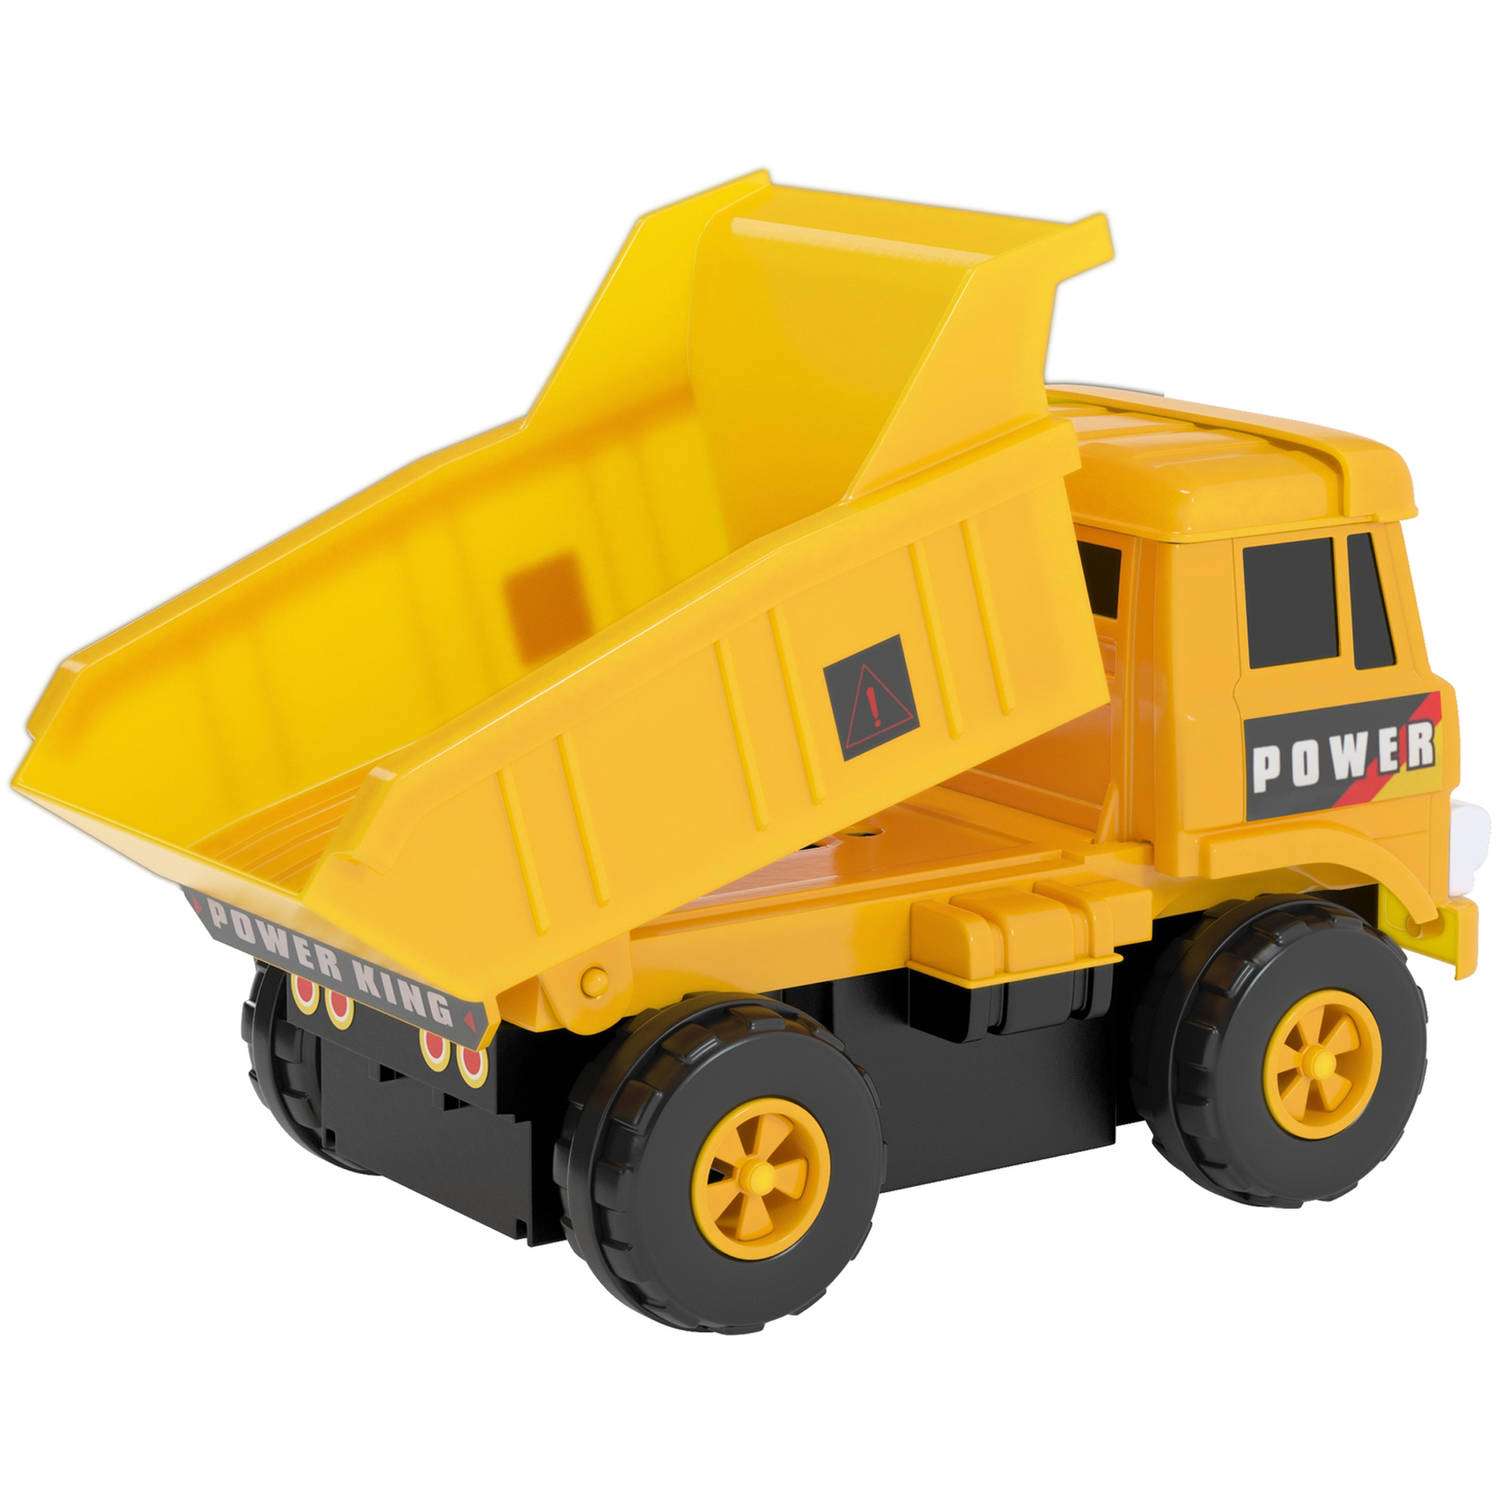 MOTA Mini Construction Toy Dump Truck